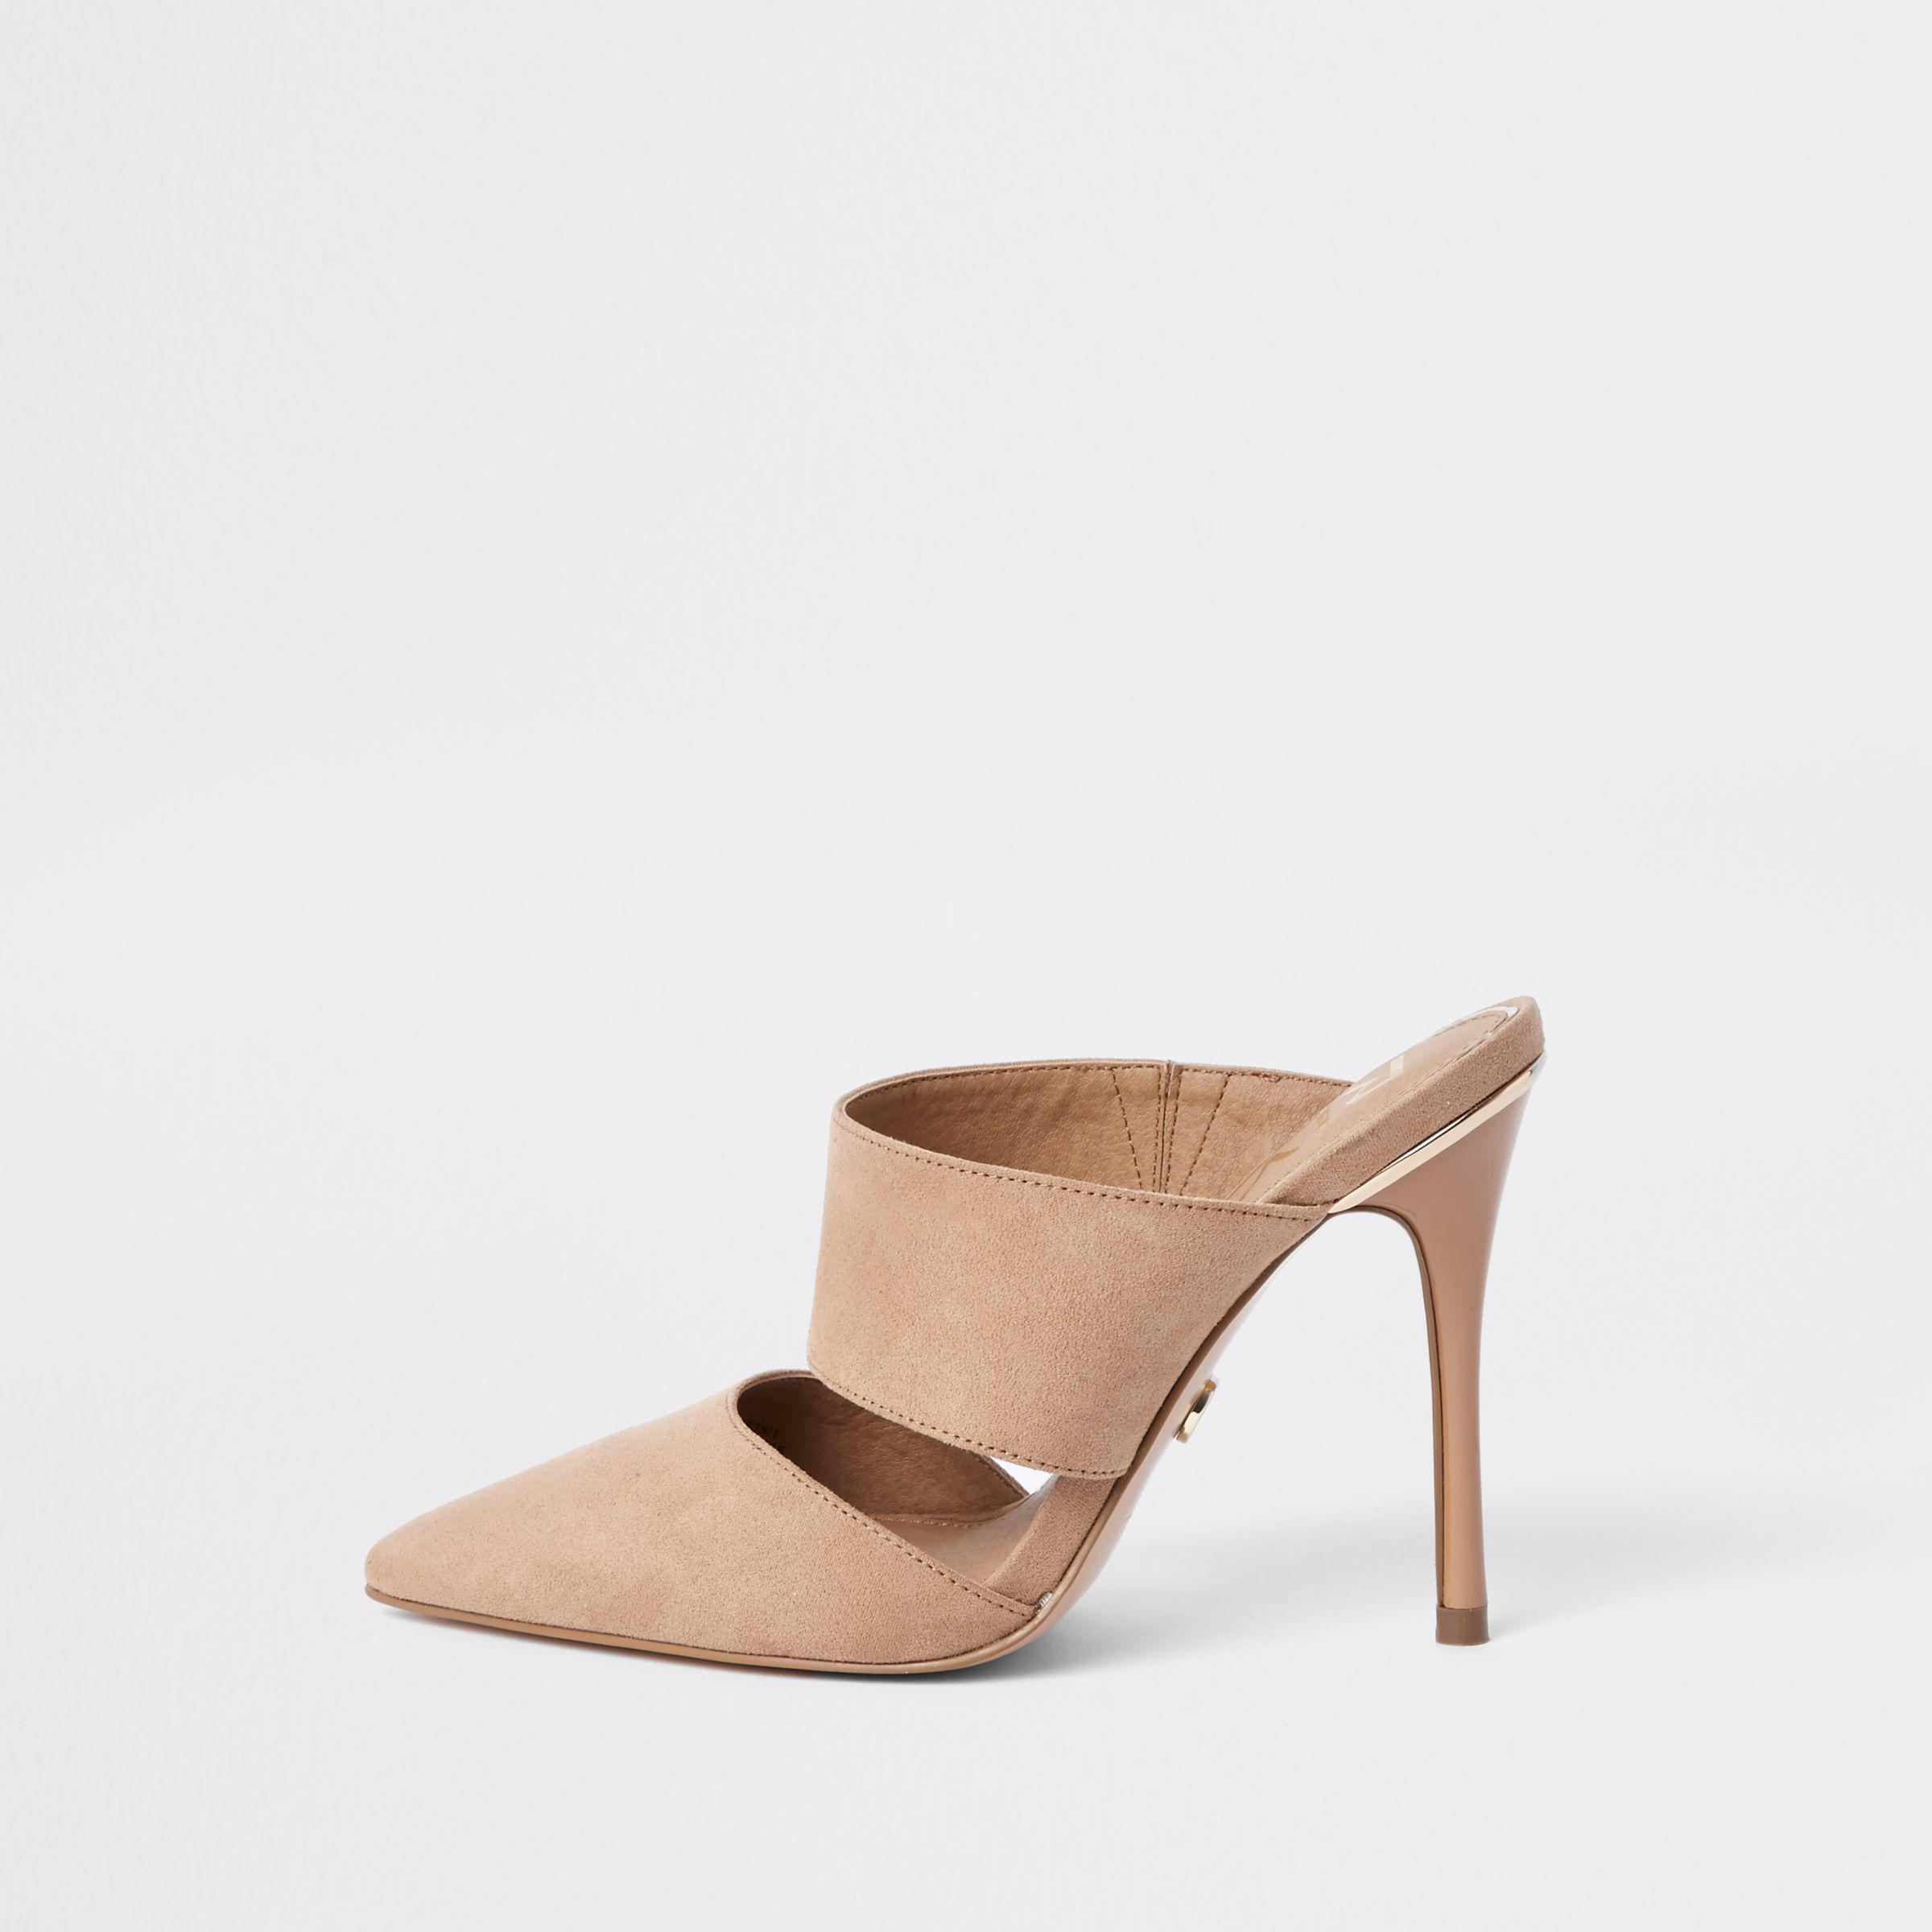 River Island Womens pointed toe stiletto mules